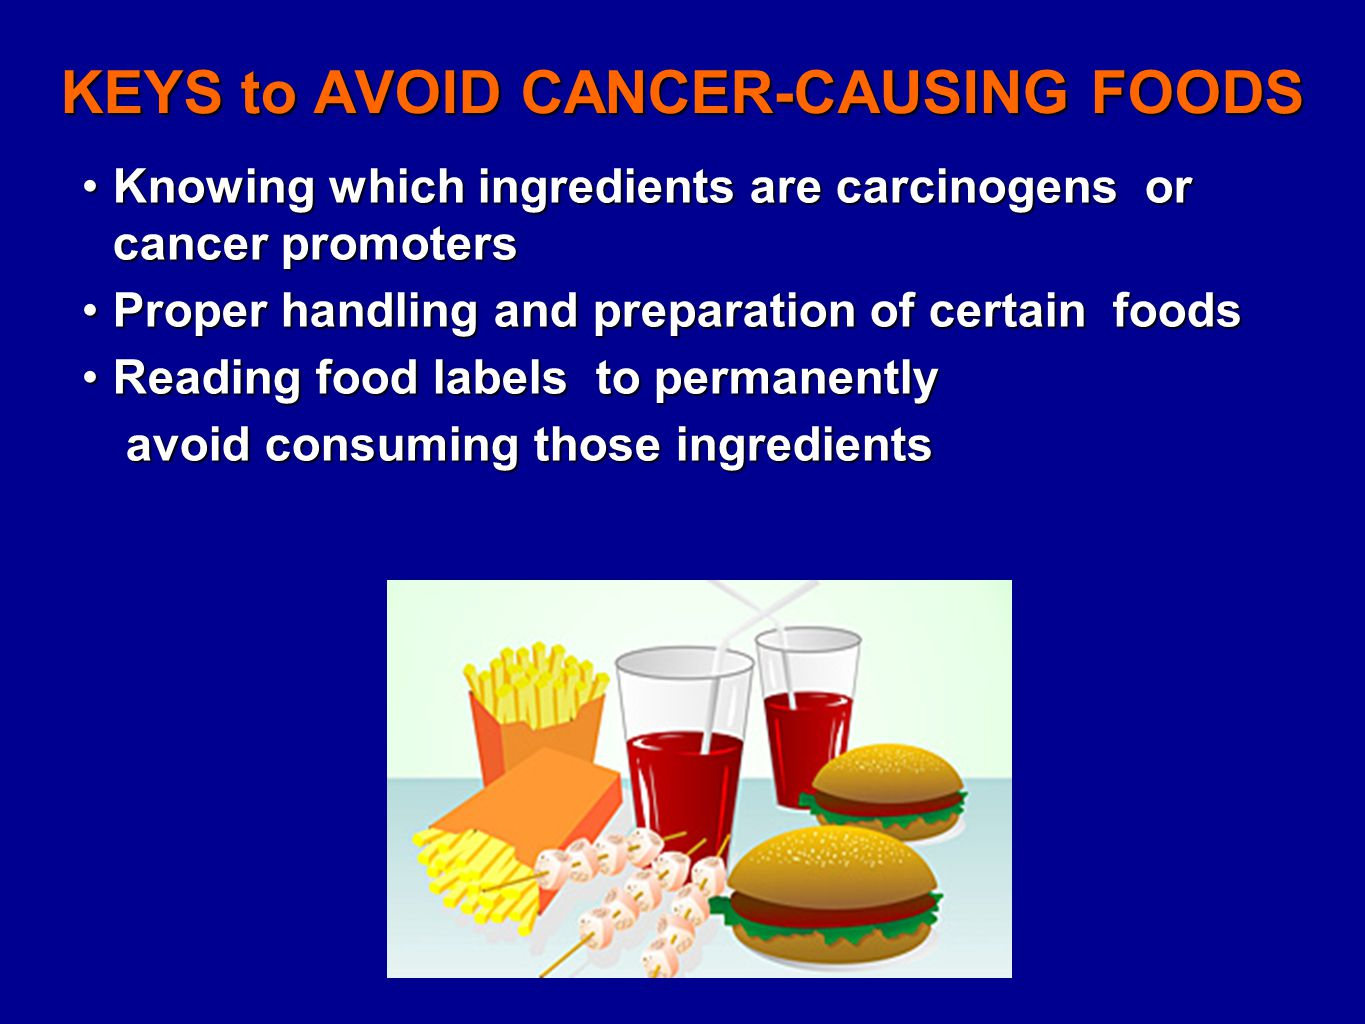 KEYS to AVOID CANCER-CAUSING FOODS Knowing which ingredients are carcinogens or cancer promotersKnowing which ingredients are carcinogens or cancer promoters Proper handling and preparation of certain foodsProper handling and preparation of certain foods Reading food labels to permanentlyReading food labels to permanently avoid consuming those ingredients avoid consuming those ingredients